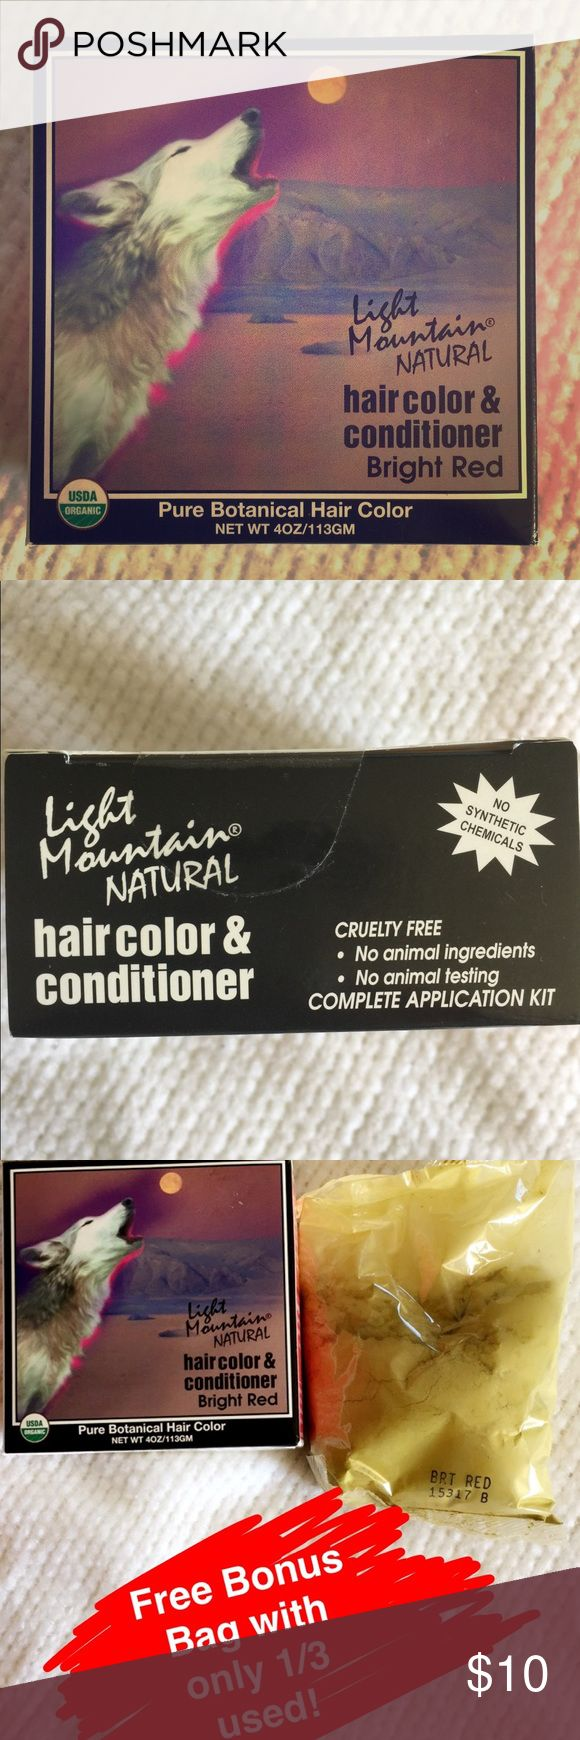 All Natural Organic Hair Dye Bright Red. Henna🍃 Plant-based hair color and conditioner. 💁🏽💁🏼♂️No chemicals, 🚫no synthetic ingredients but permanent results💪🏽. Leaves hair conditioned and super soft. Color is bright red. Comes with 1 full complete application kit AND free bonus kit that I used only once. Multiple uses per box Makeup